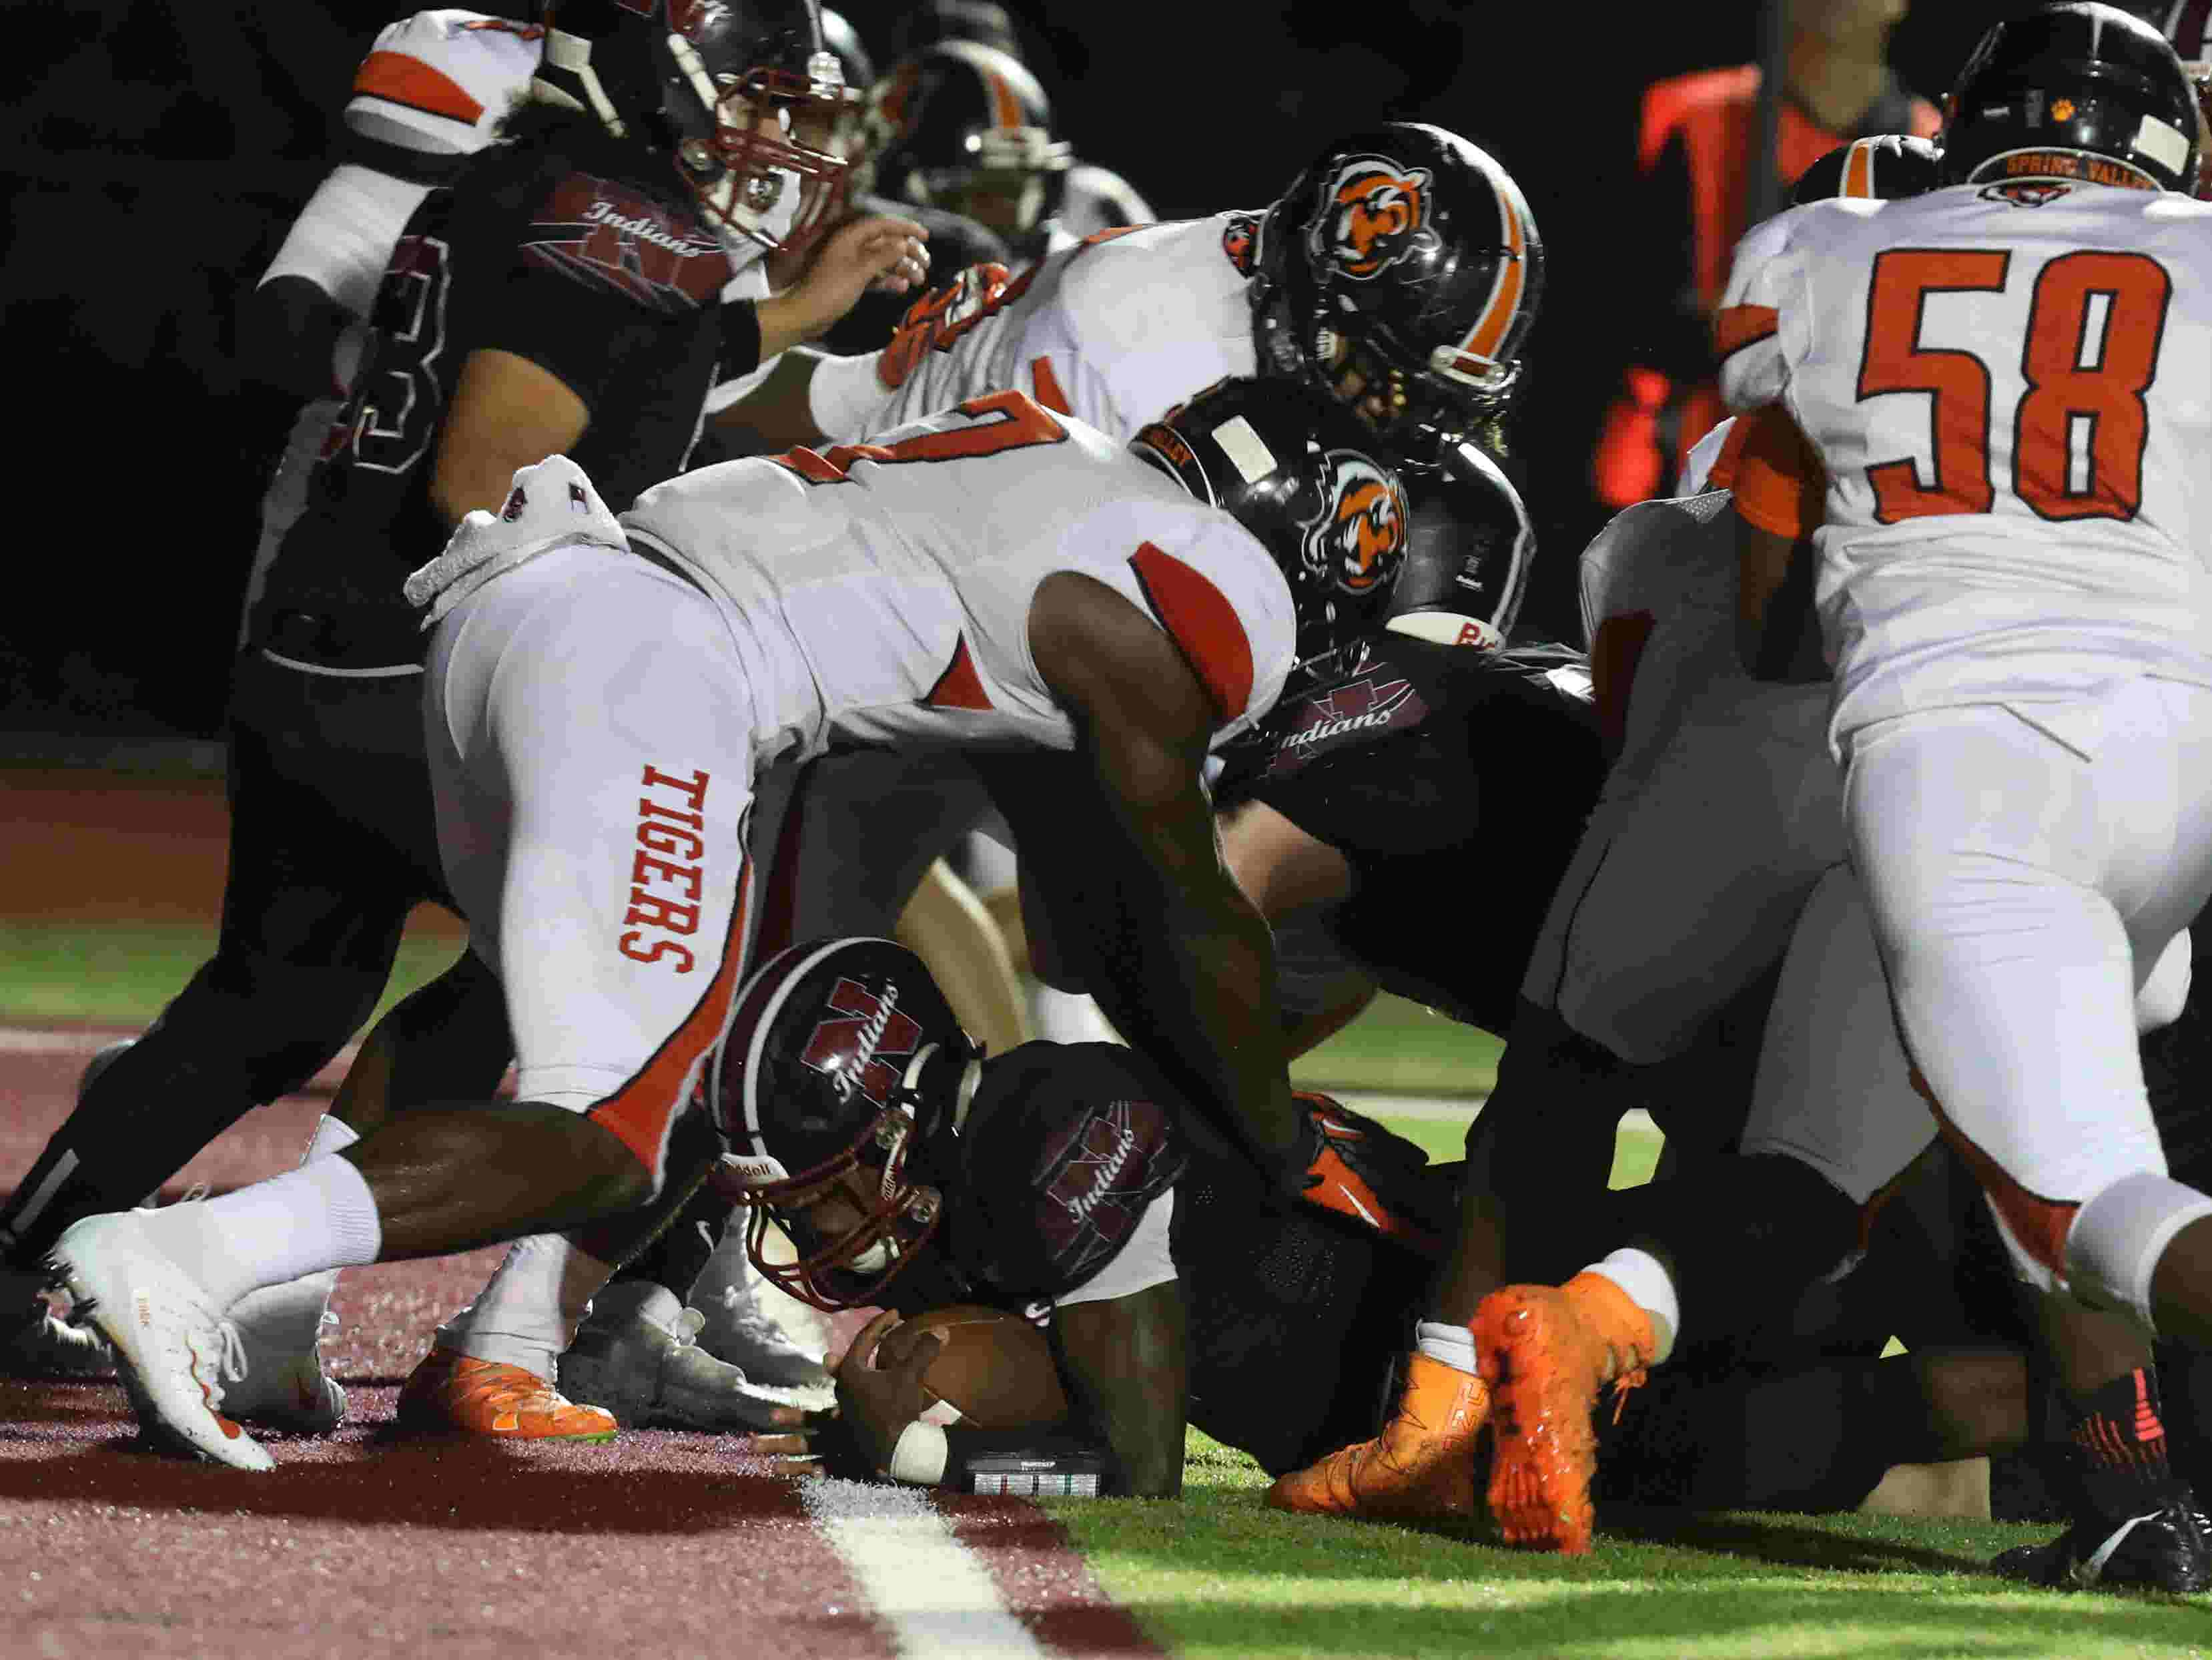 Football Nyack Holds Off Spring Valley Likely Loses Qb For Season